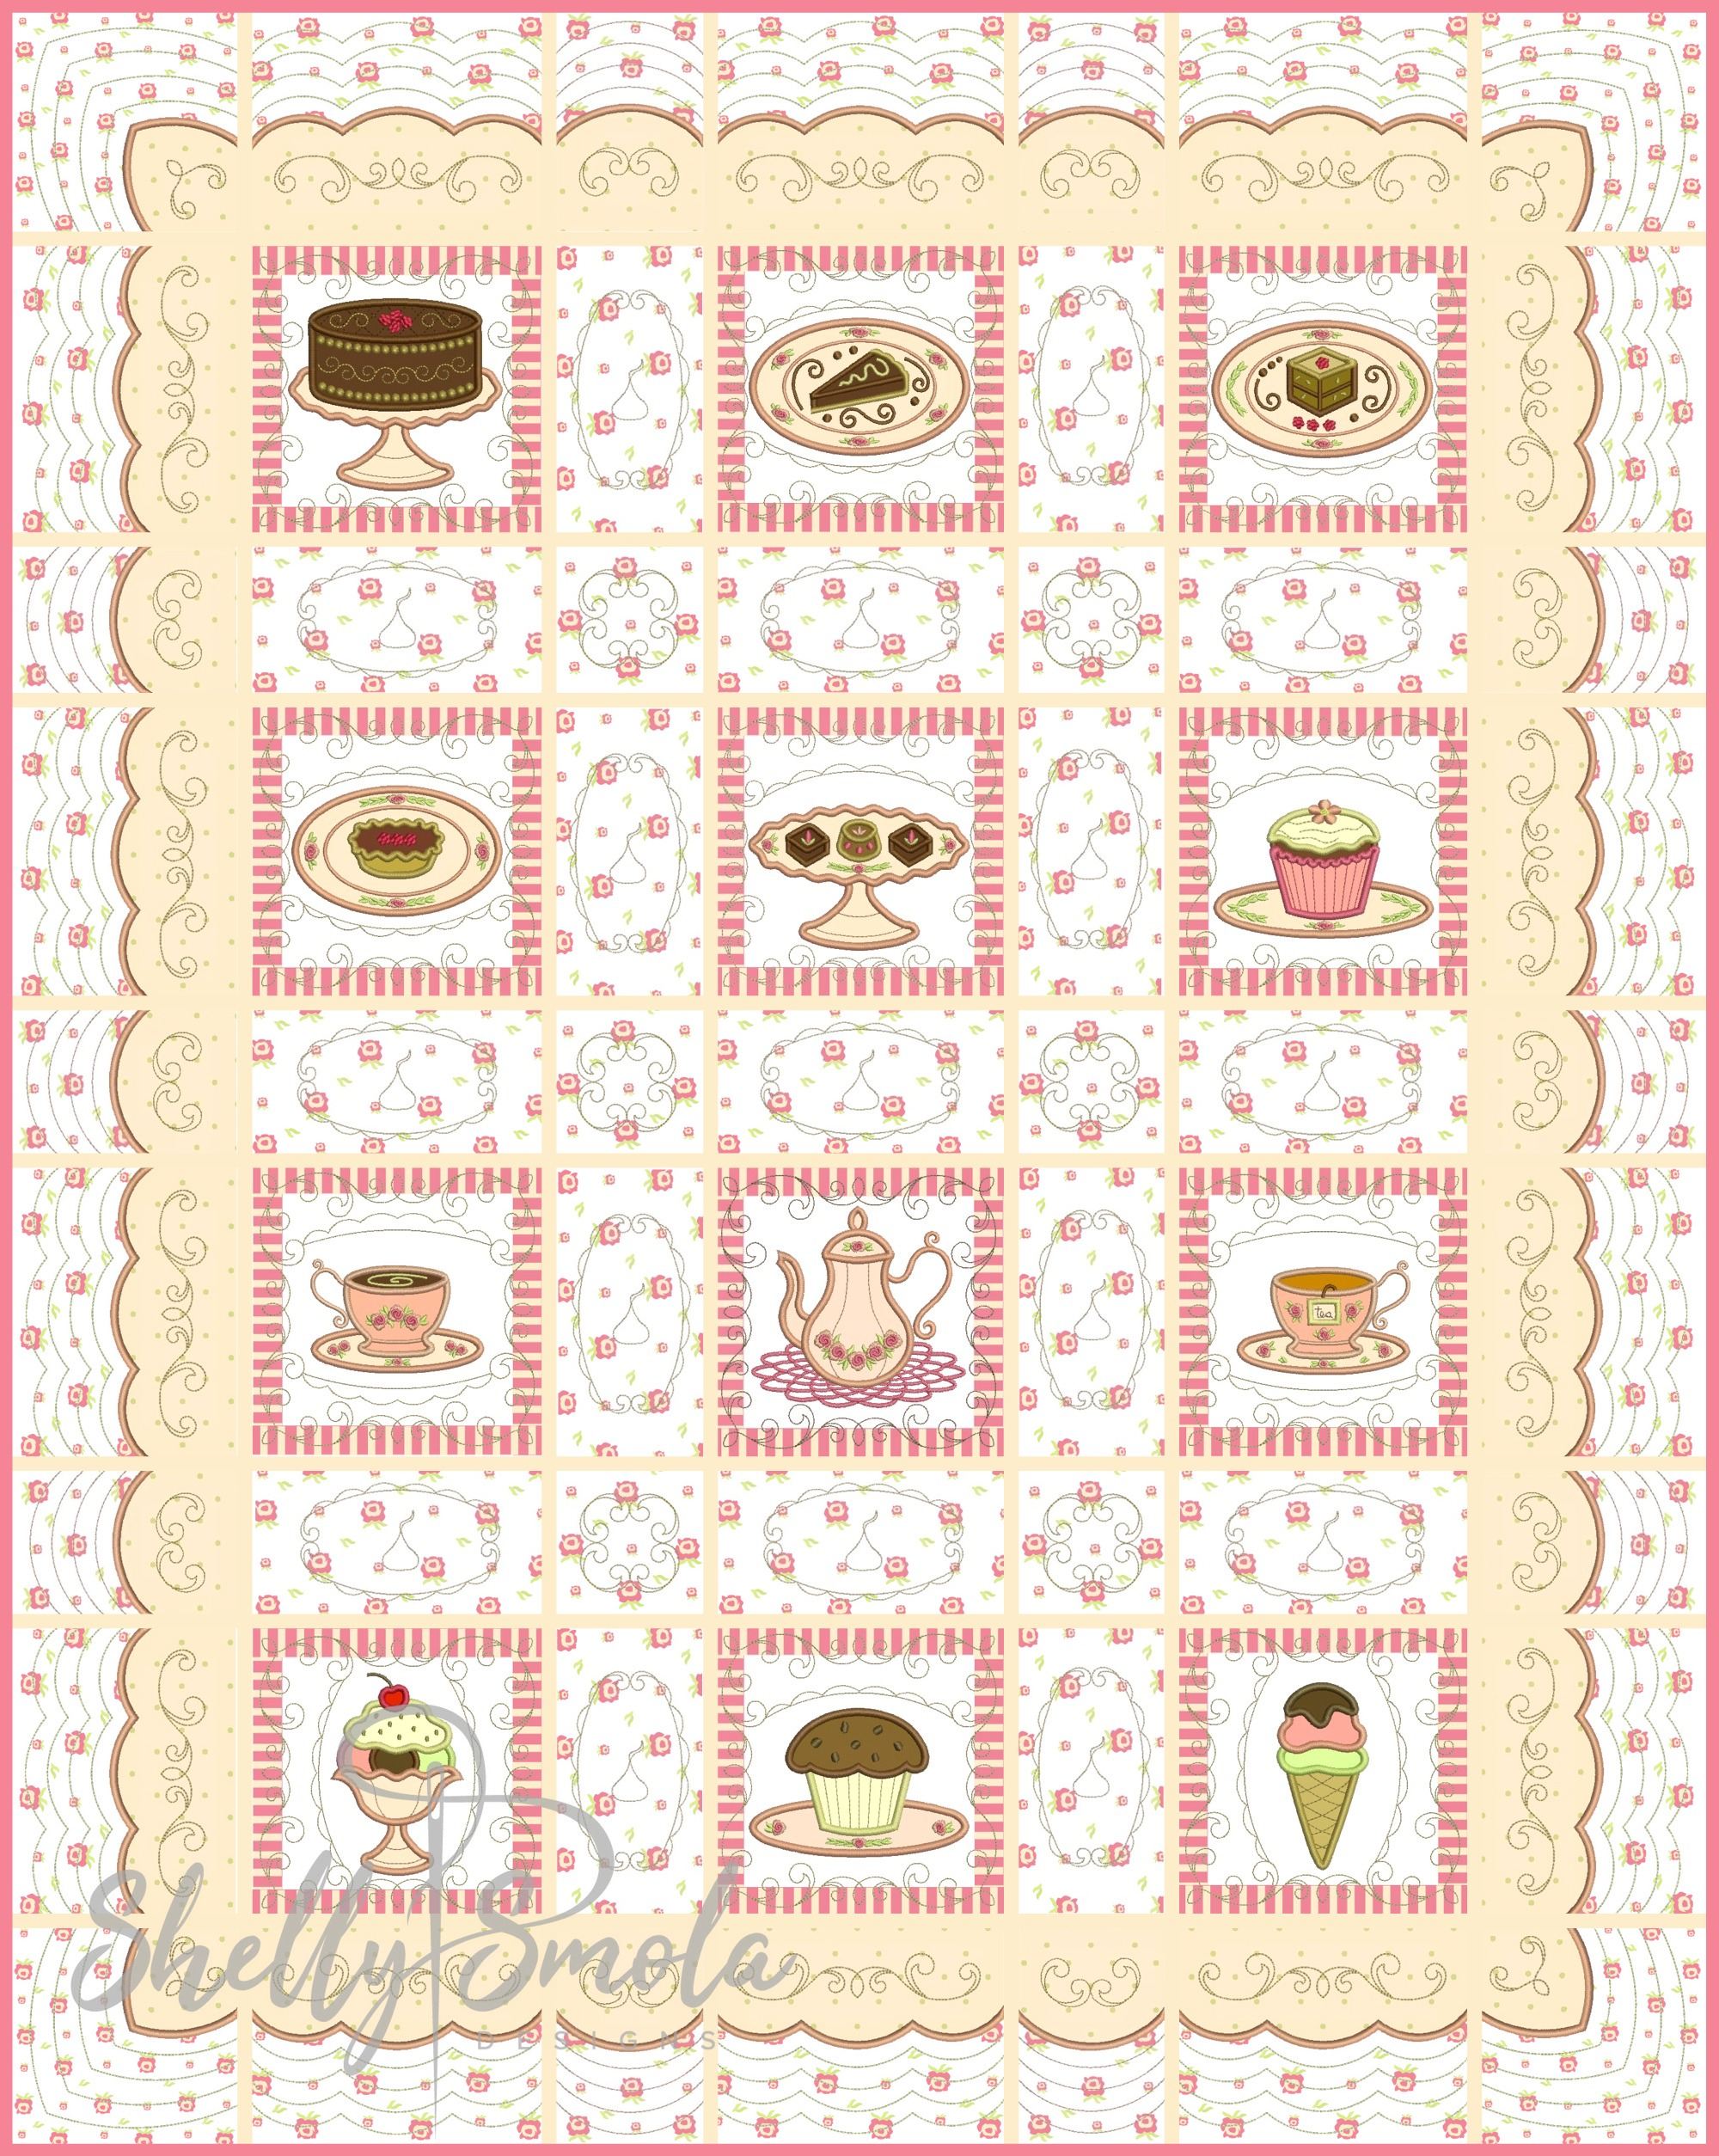 Sweet Temptations Quilt Layout Idea by Shelly Smola